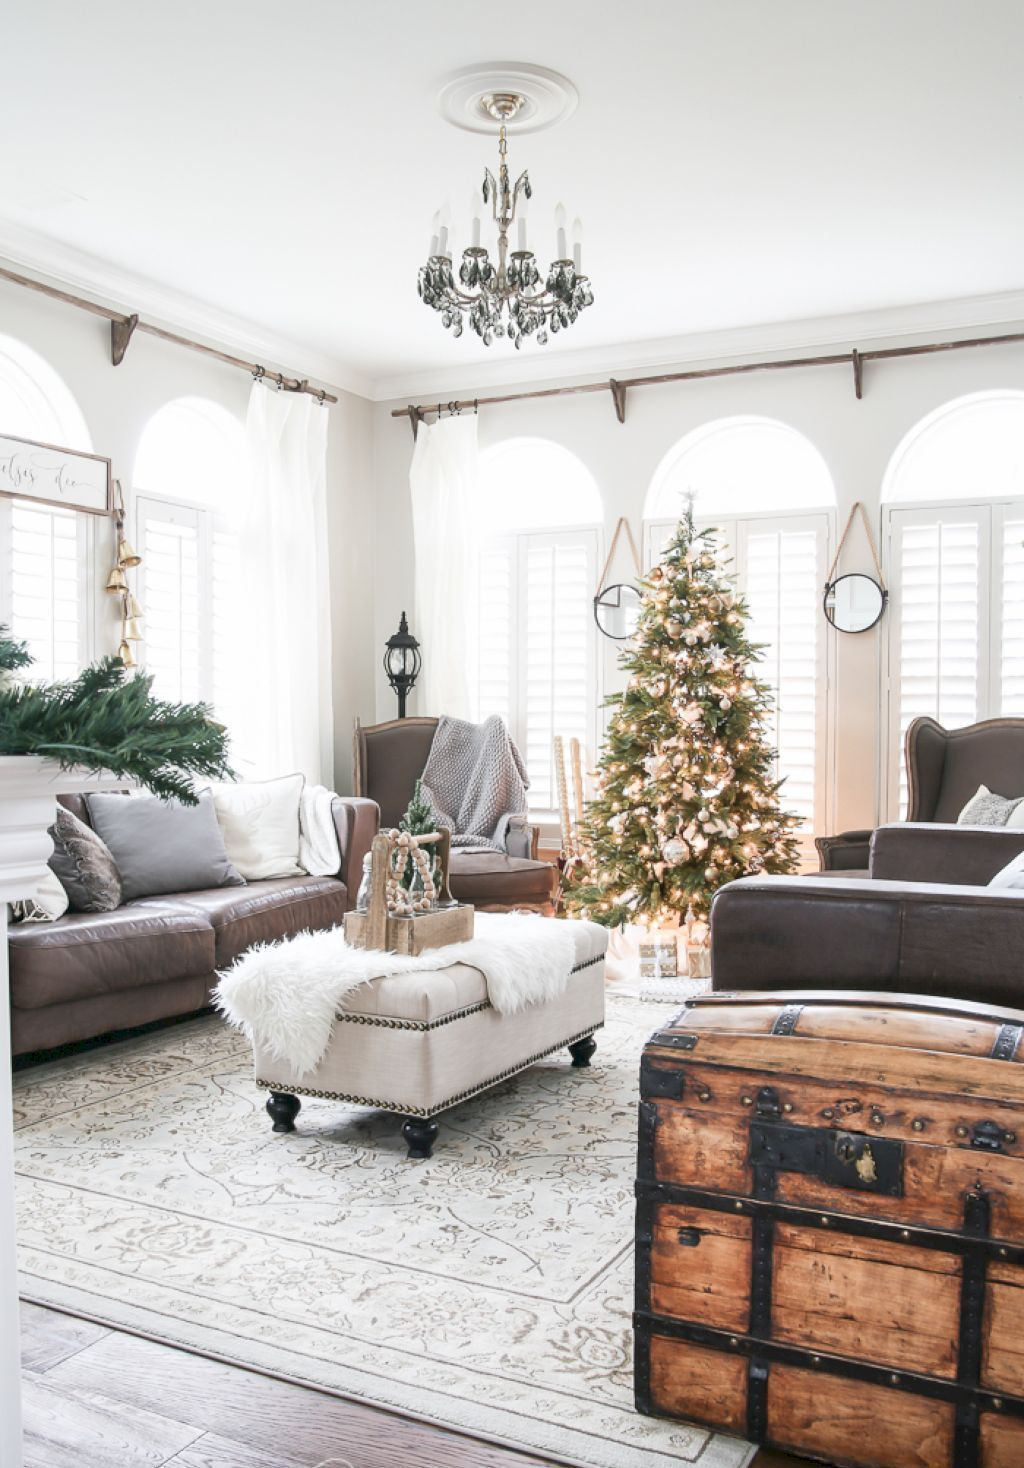 A Guide to Christmas Party Games | Decor styles, Living rooms and House